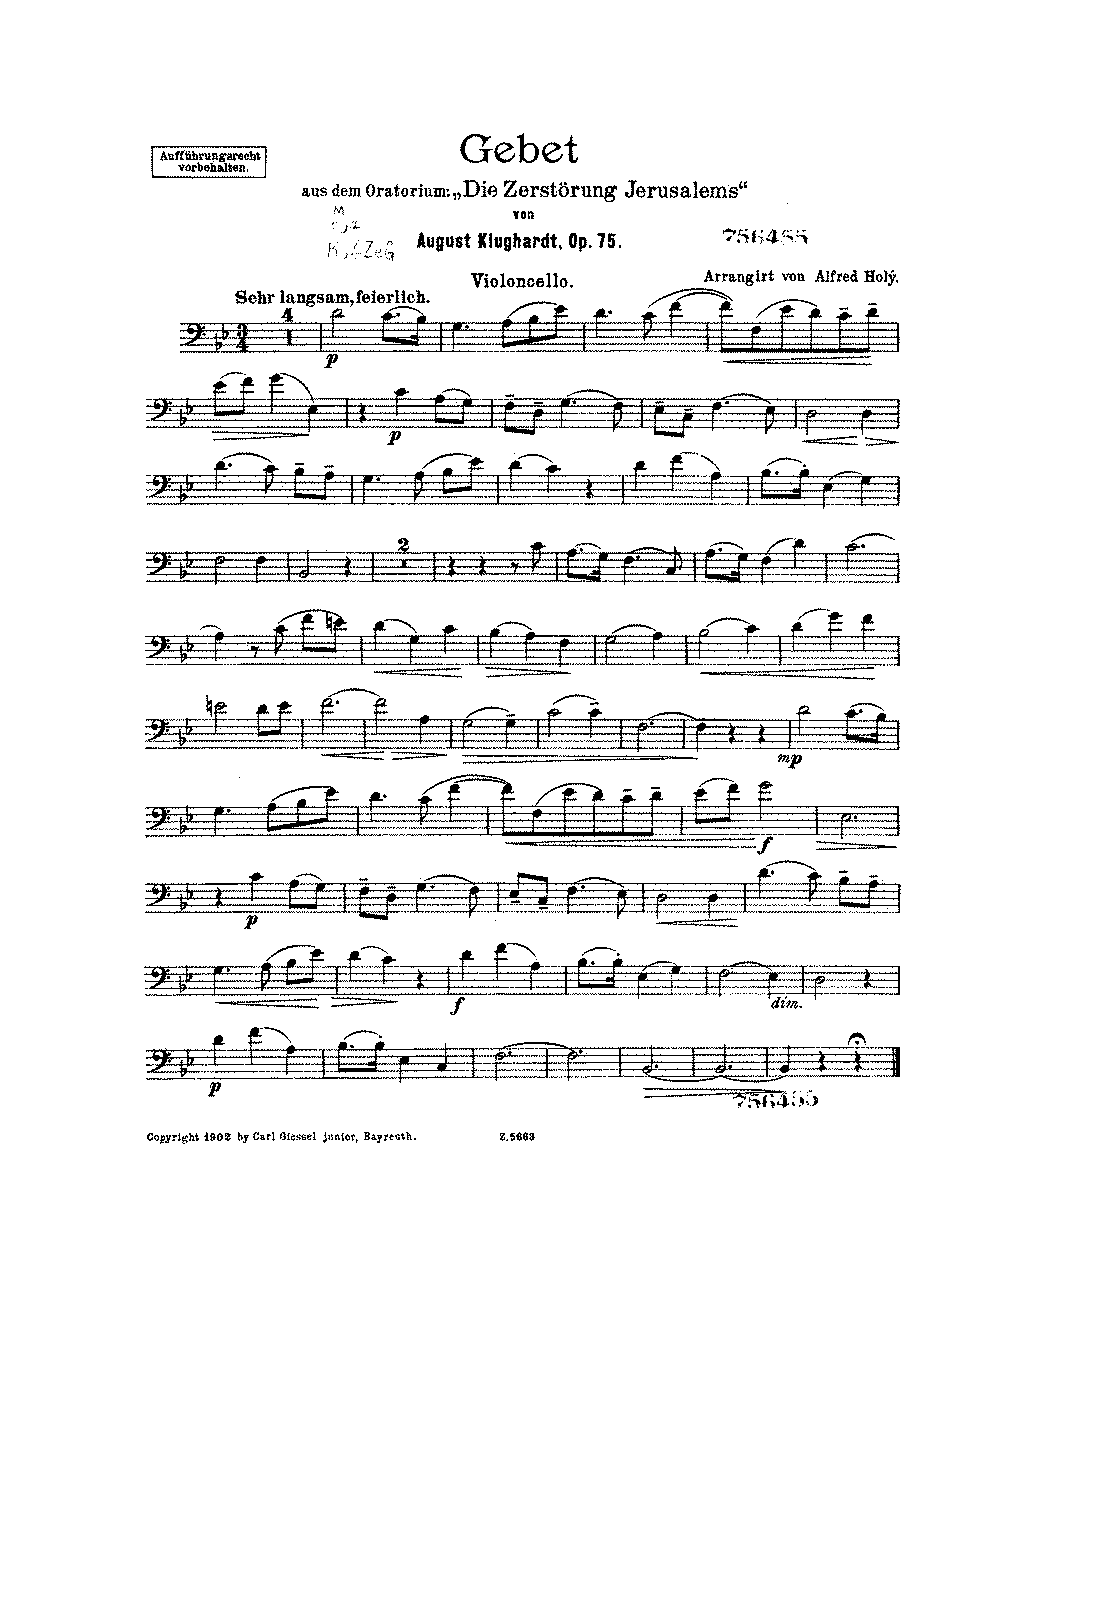 SIBLEY1802.8312.ee97-39087008734222cello.pdf